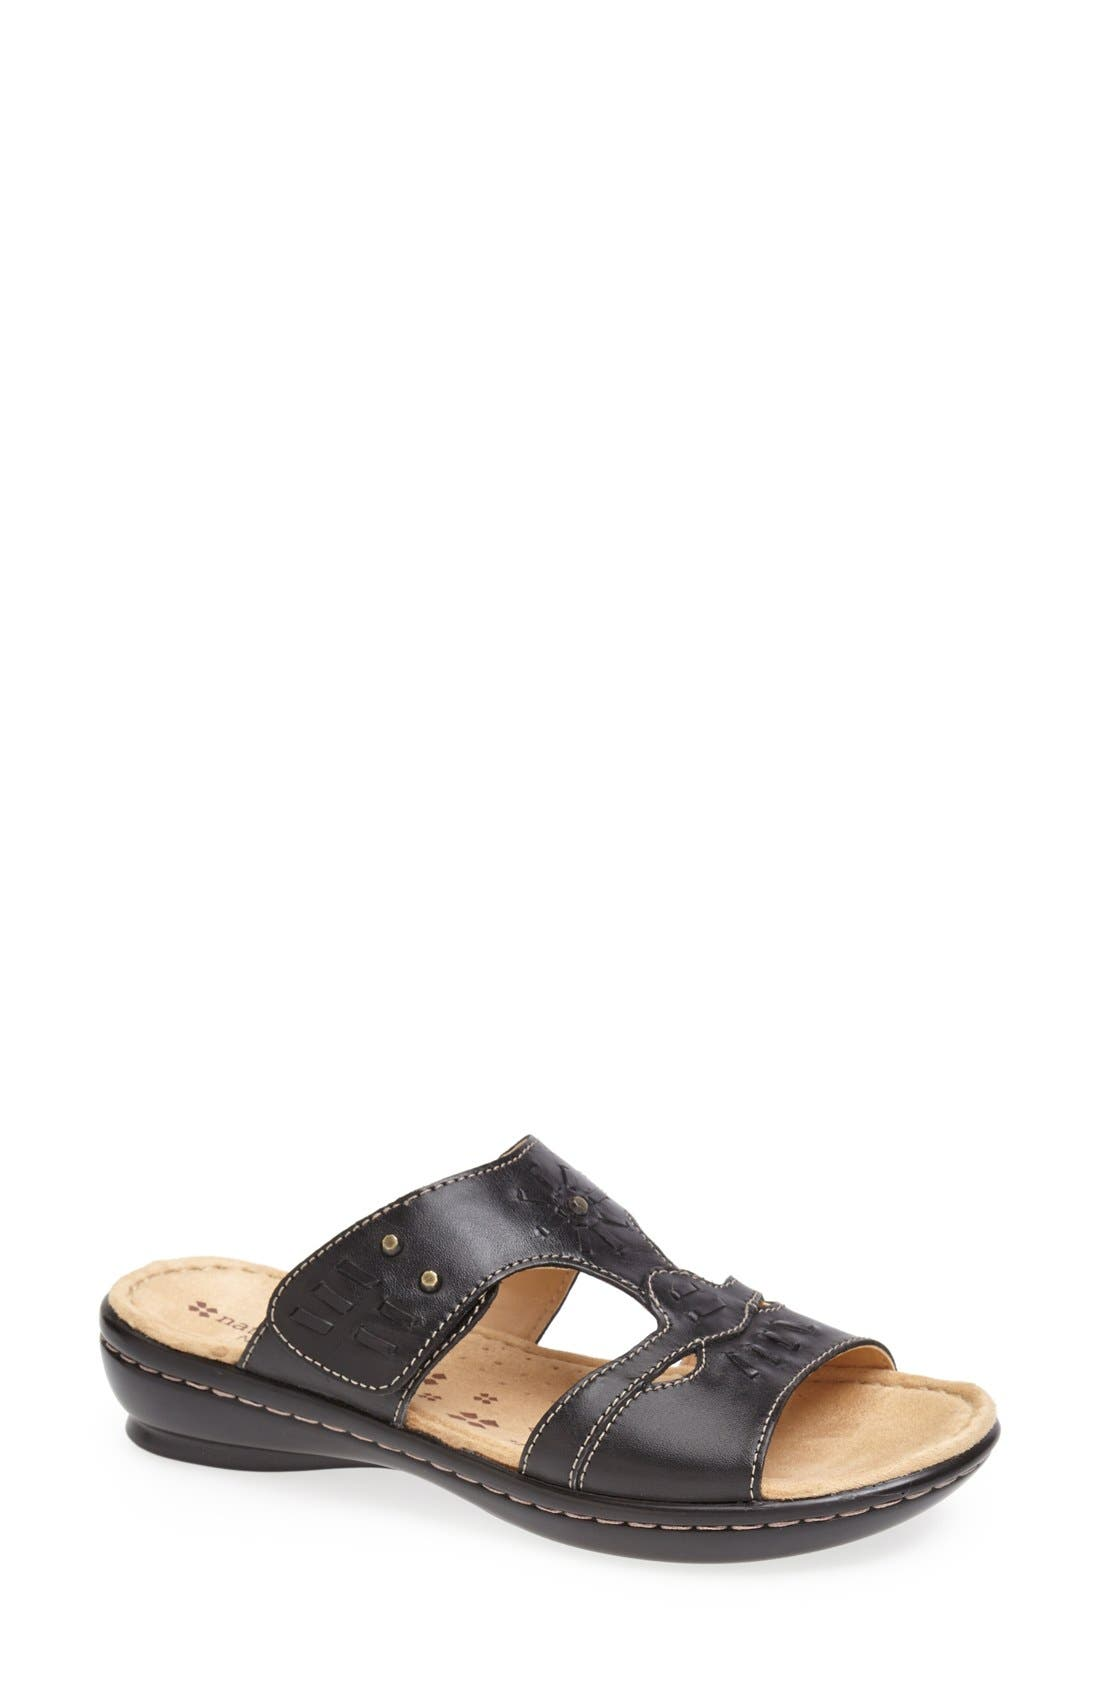 Main Image - Naturalizer 'Jalisa' Sandal (Women)